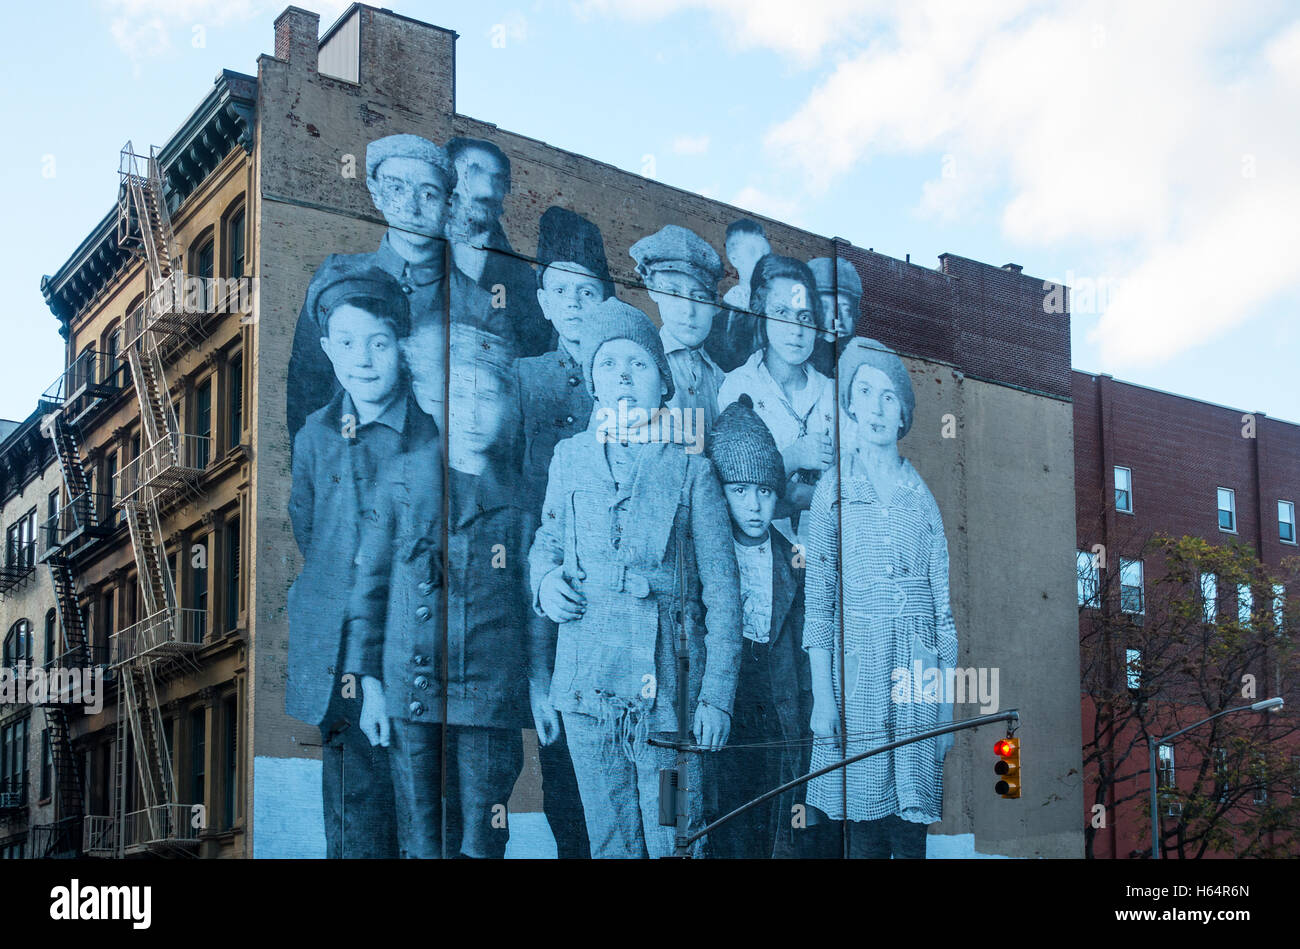 large wall mural of ellis island immigrants in new york city stock large wall mural of ellis island immigrants in new york city